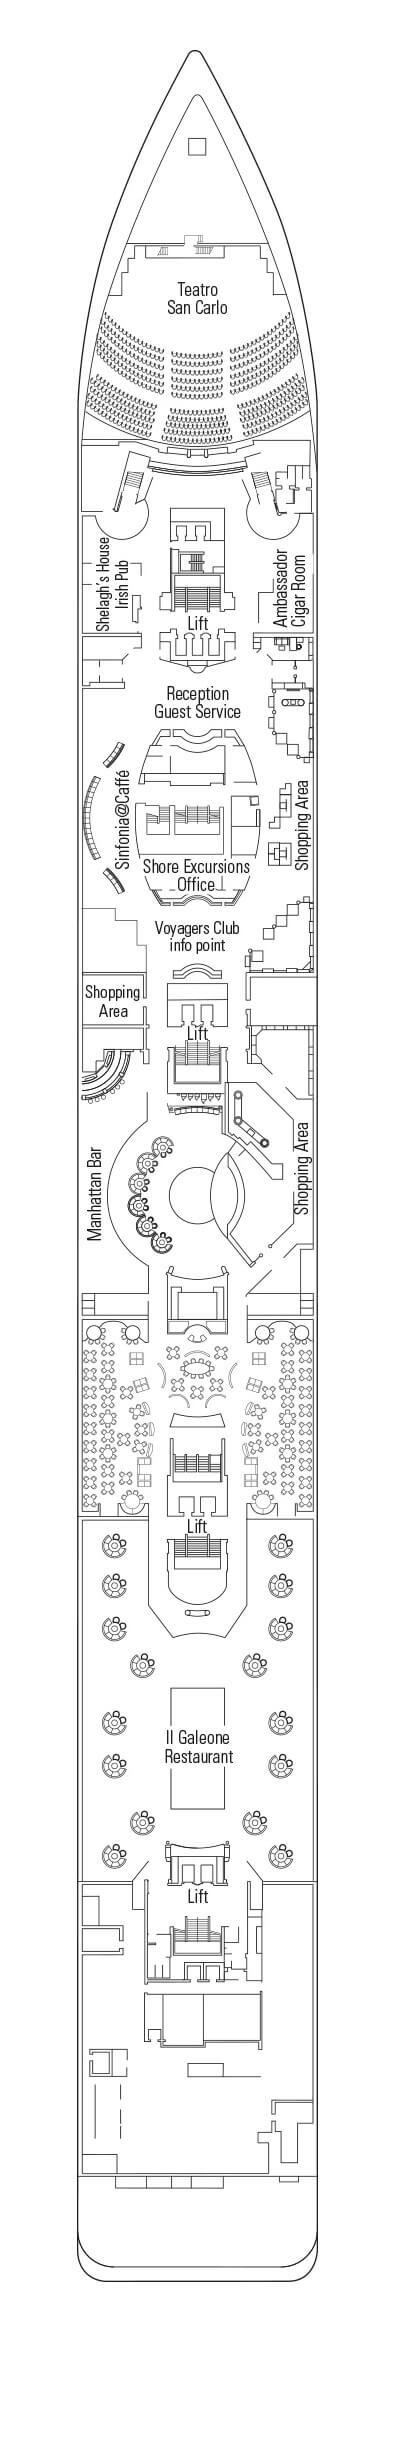 MSC Sinfonia Beethoven Deck 5 layout